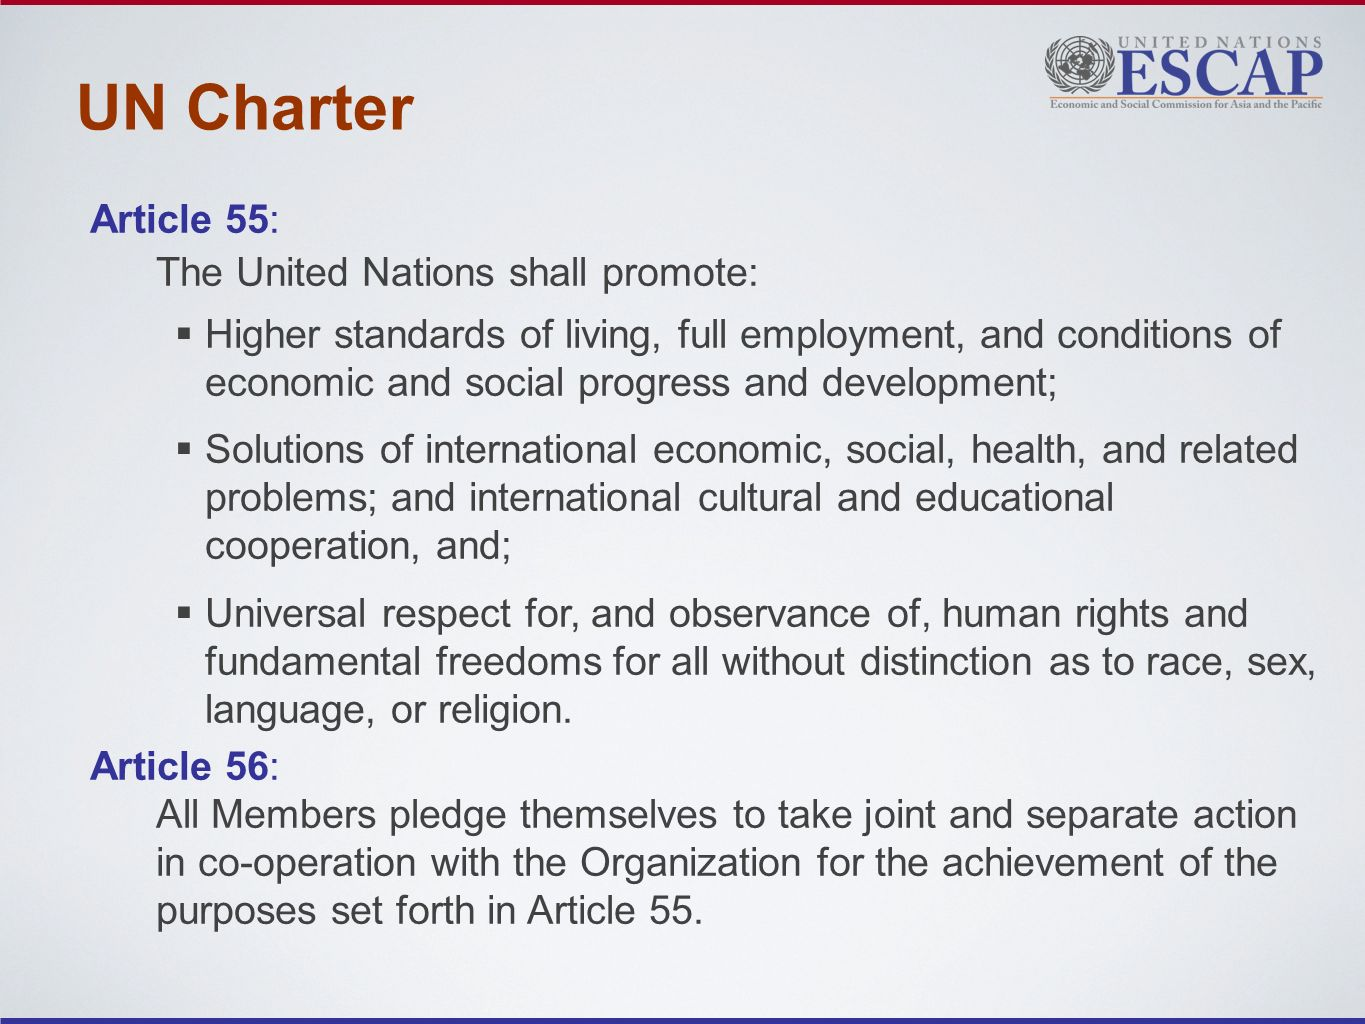 UN Charter Article 55: The United Nations shall promote: Higher standards of living, full employment, and conditions of economic and social progress and development; Solutions of international economic, social, health, and related problems; and international cultural and educational cooperation, and; Universal respect for, and observance of, human rights and fundamental freedoms for all without distinction as to race, sex, language, or religion.